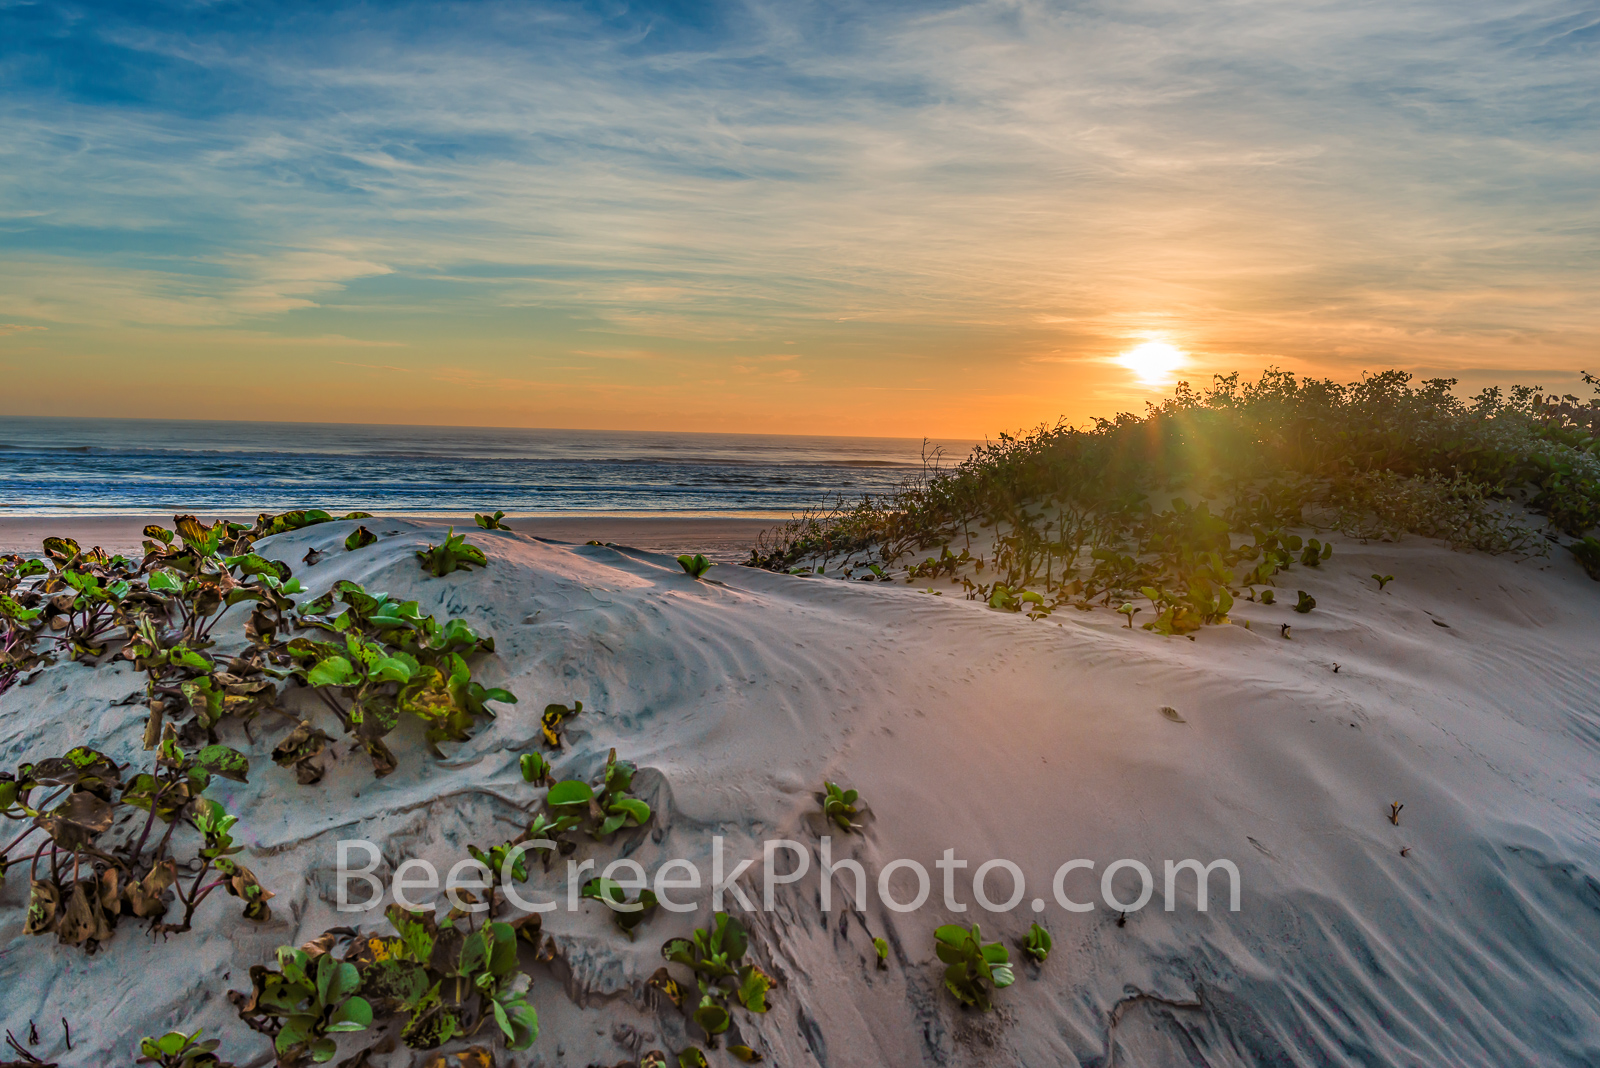 Sand Dune at Sunrise -  We took this as the sunrises over the ocean casting a bit of color at the horizon along the surf and...